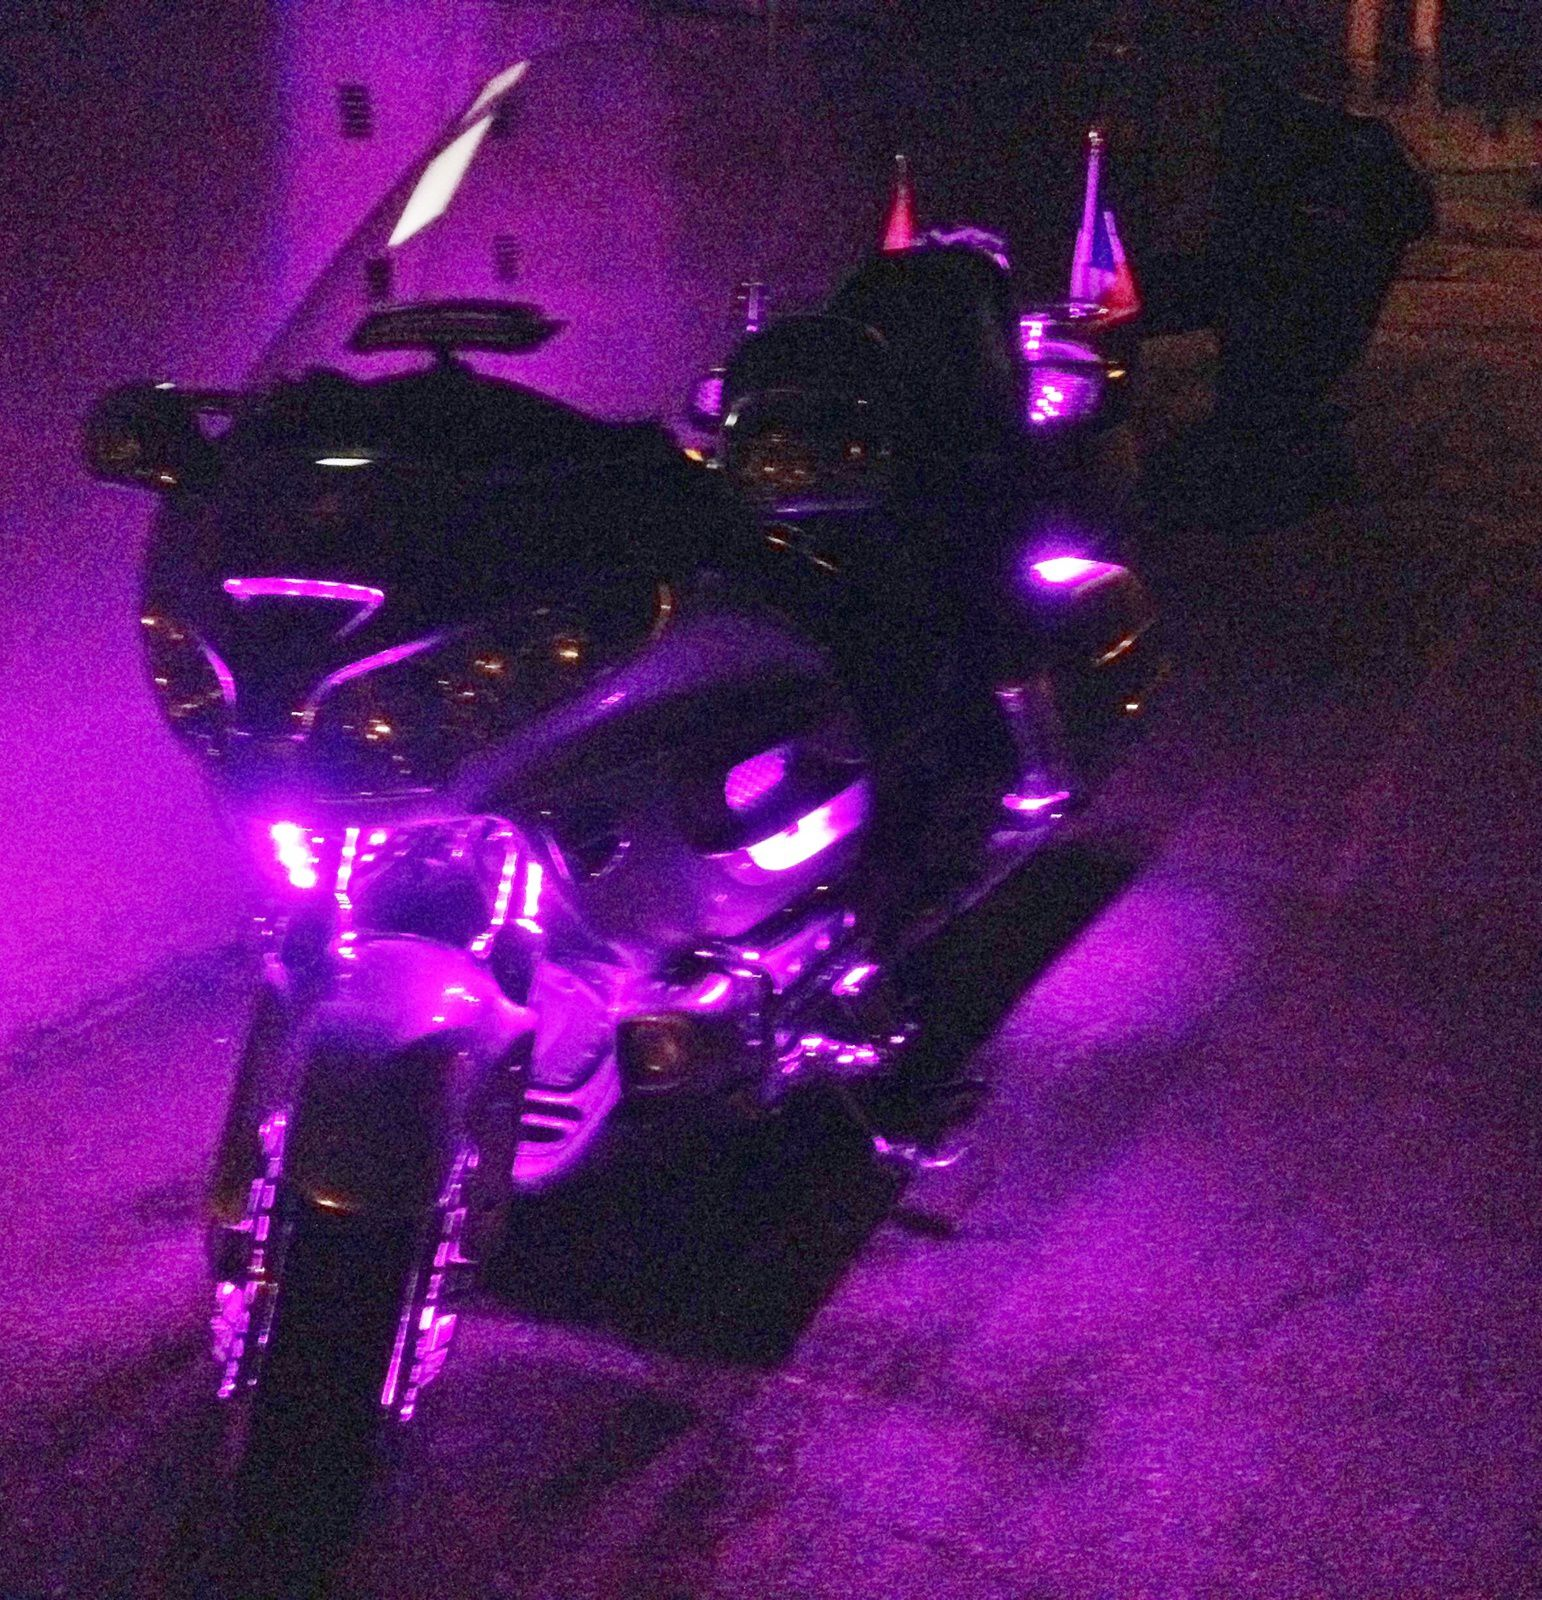 Goldwing 1800 - Les leds à poser